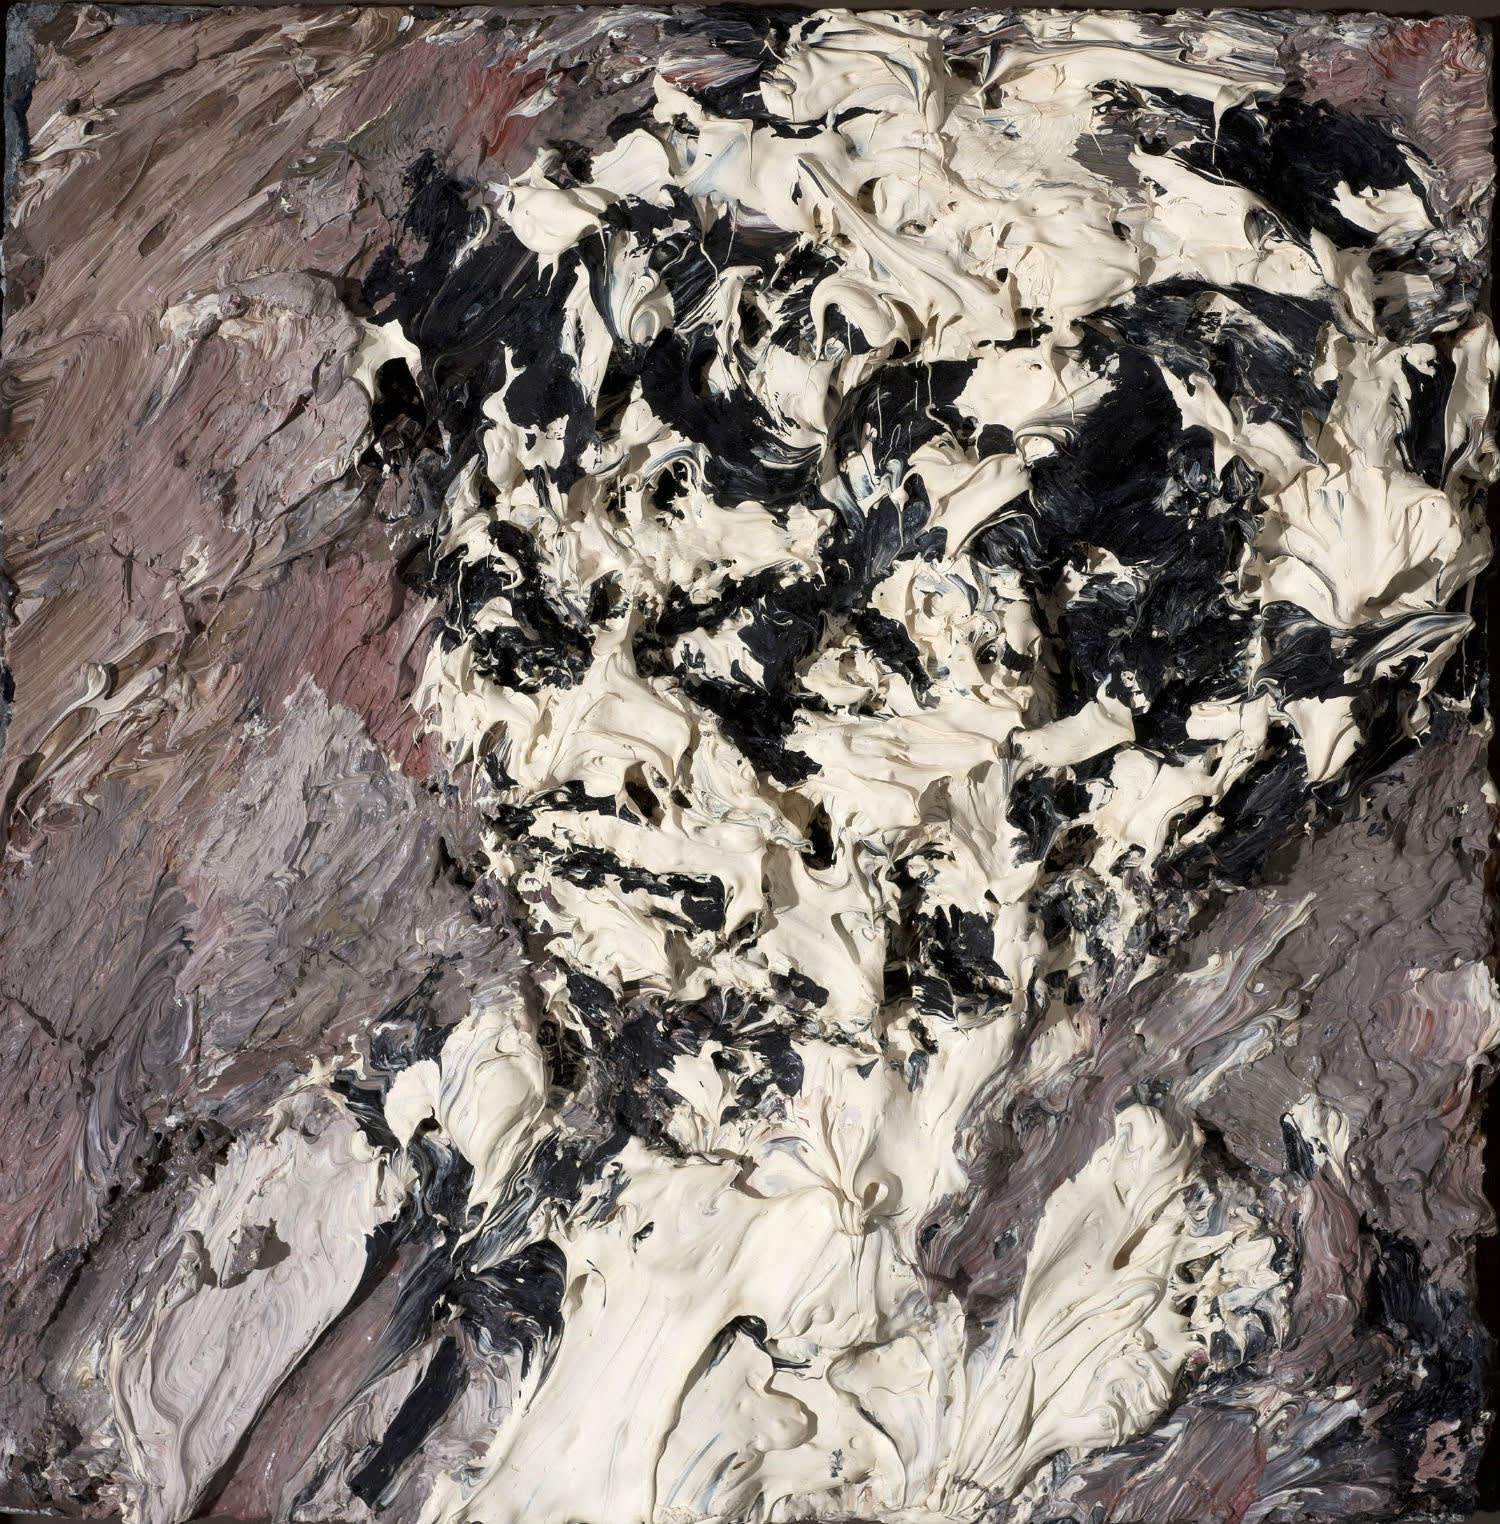 Frank Auerbach (1931-) Head of Helen Gillespie c.1962-64 Oil on board 29.2 x 29.2 cm Ben Uri Collection © Frank Auerbach, courtesy Marlborough Fine Art To see and discover more about this artist click here